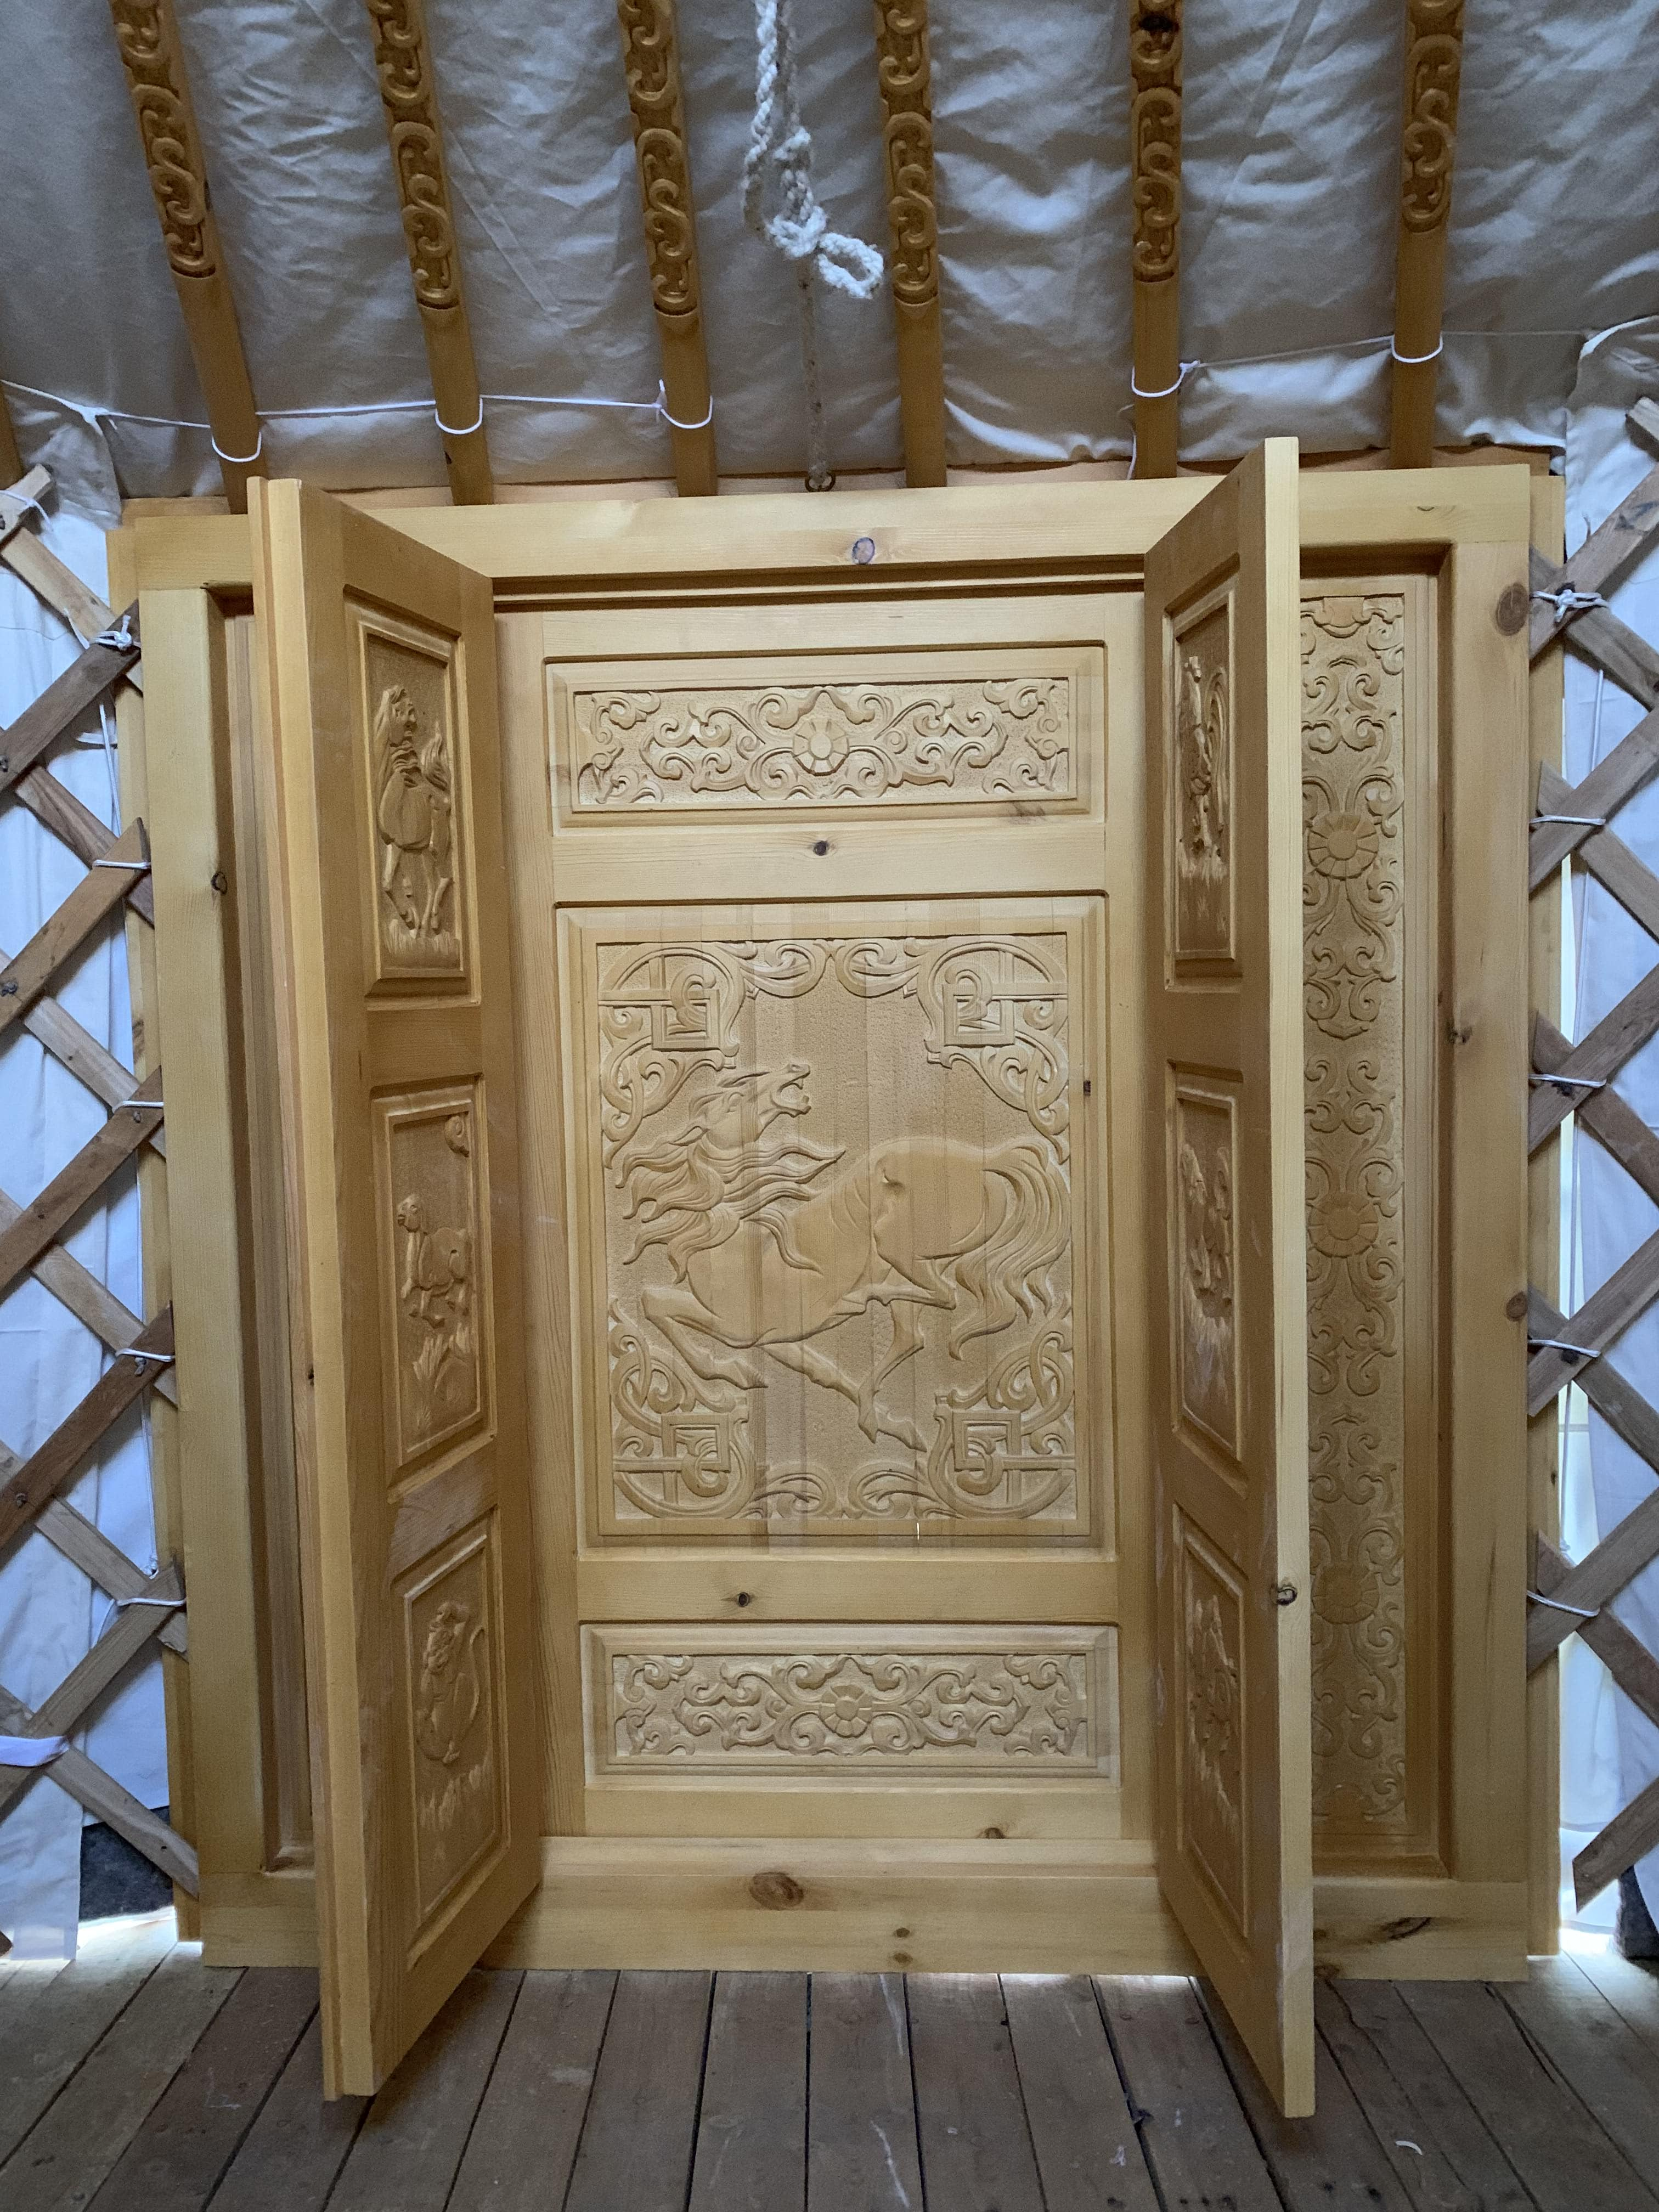 A beautifully carved wooden door